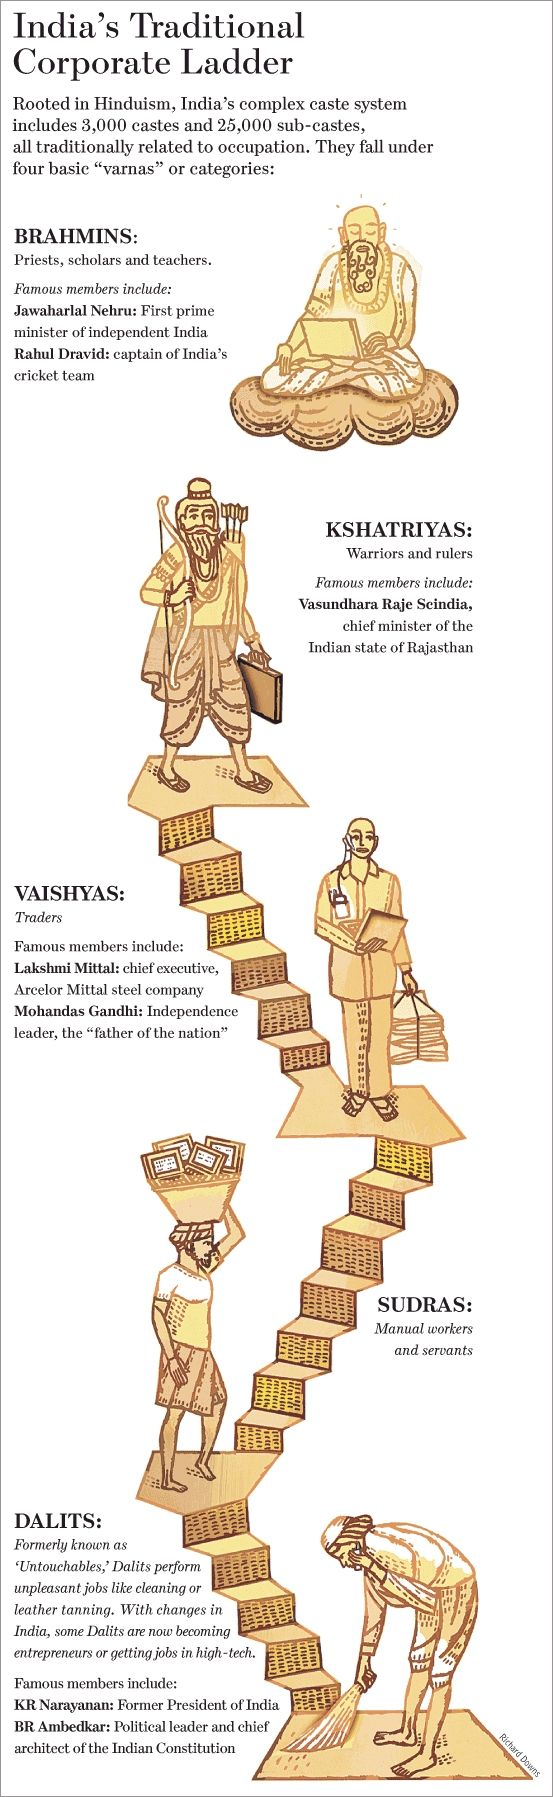 inequality of indian caste system The indian caste system has existed for about 3,000 years there were four original castes, and one caste so low that it was not even considered to be part of the caste system: the brahman caste usually consisted of priests or scholars and enjoyed a great deal of prestige and wealth.